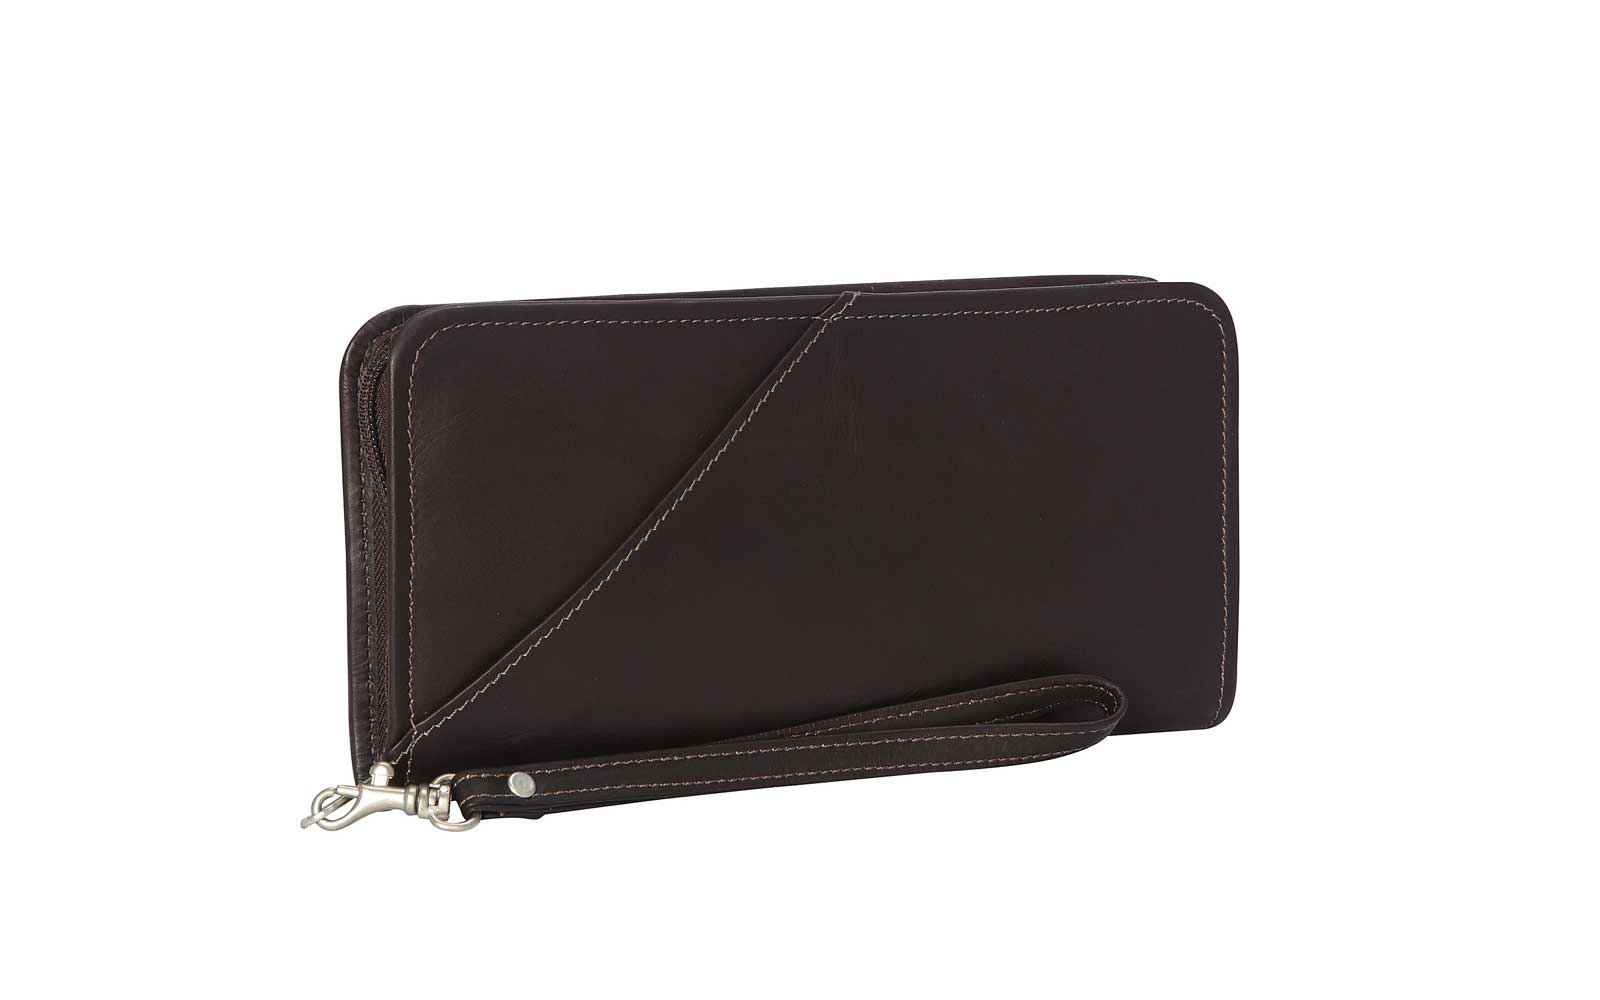 Piel 'Executive' Travel Wallet